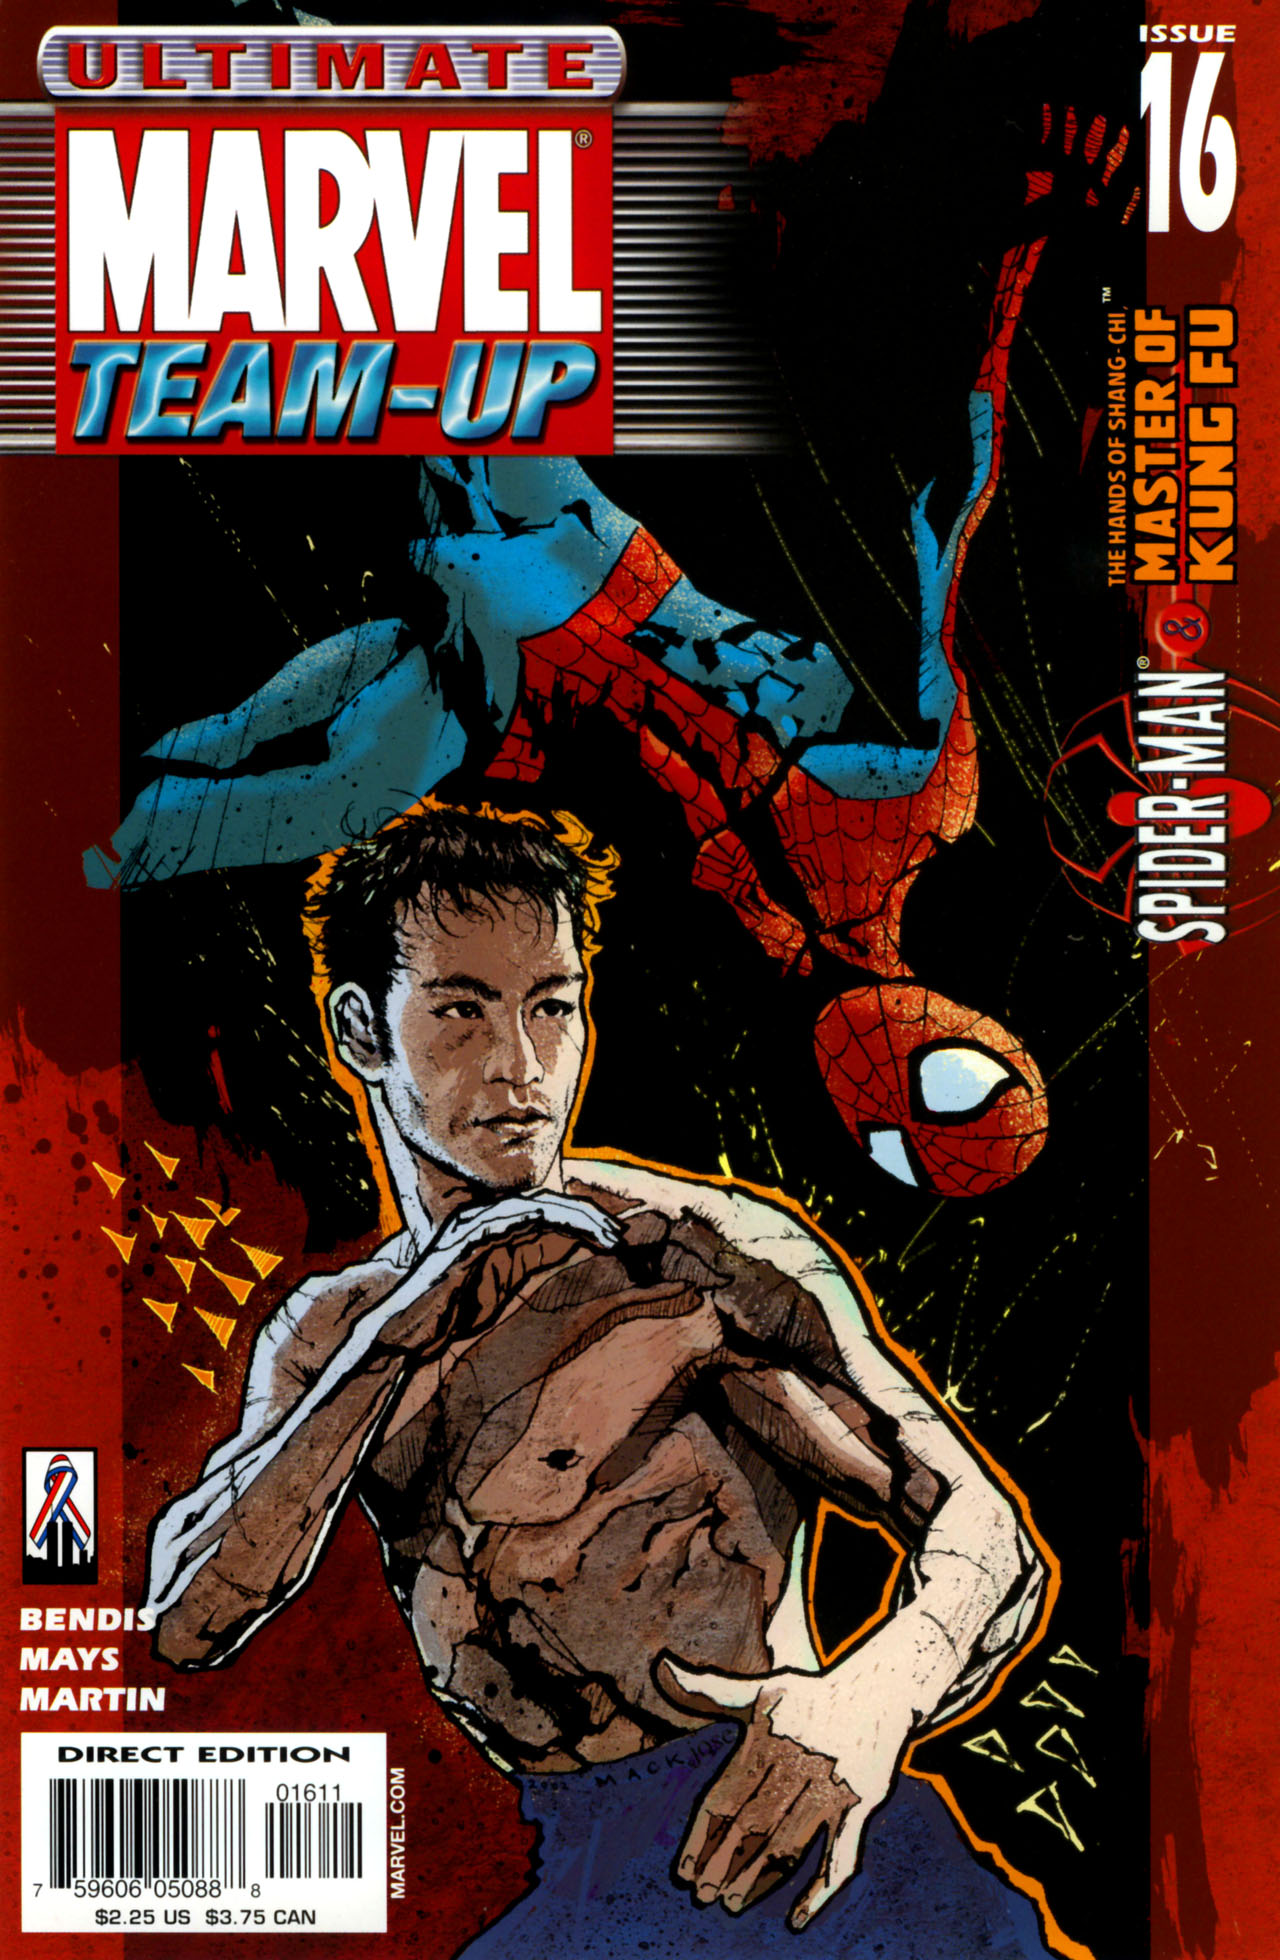 Read online Ultimate Marvel Team-Up comic -  Issue #16 - 1